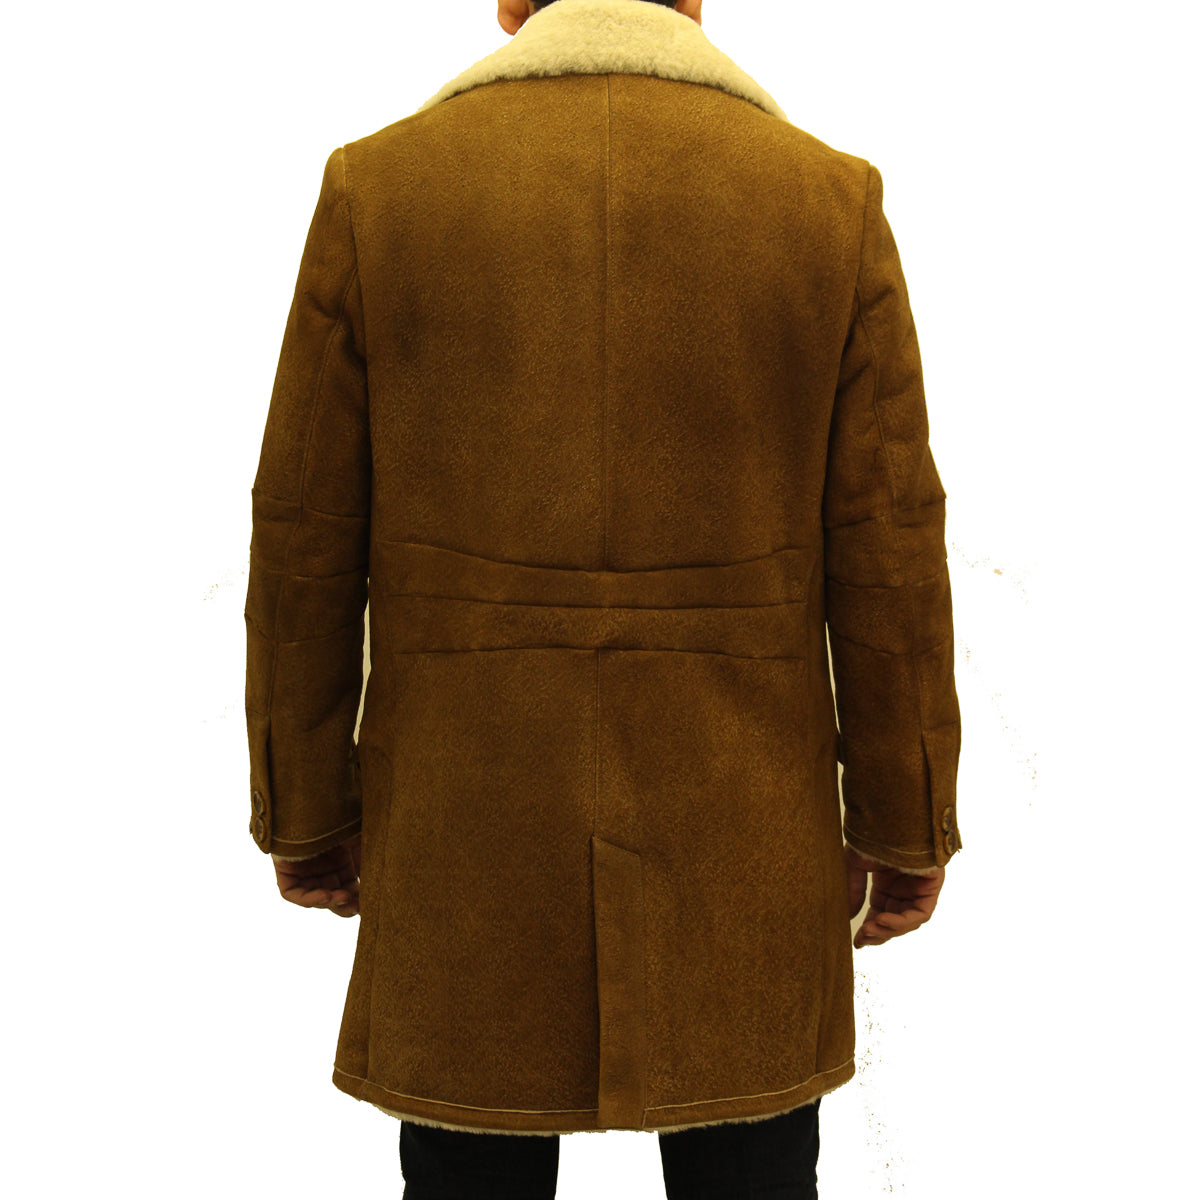 Mens luxurious tan with cream sheepskin single breasted winter trench coat